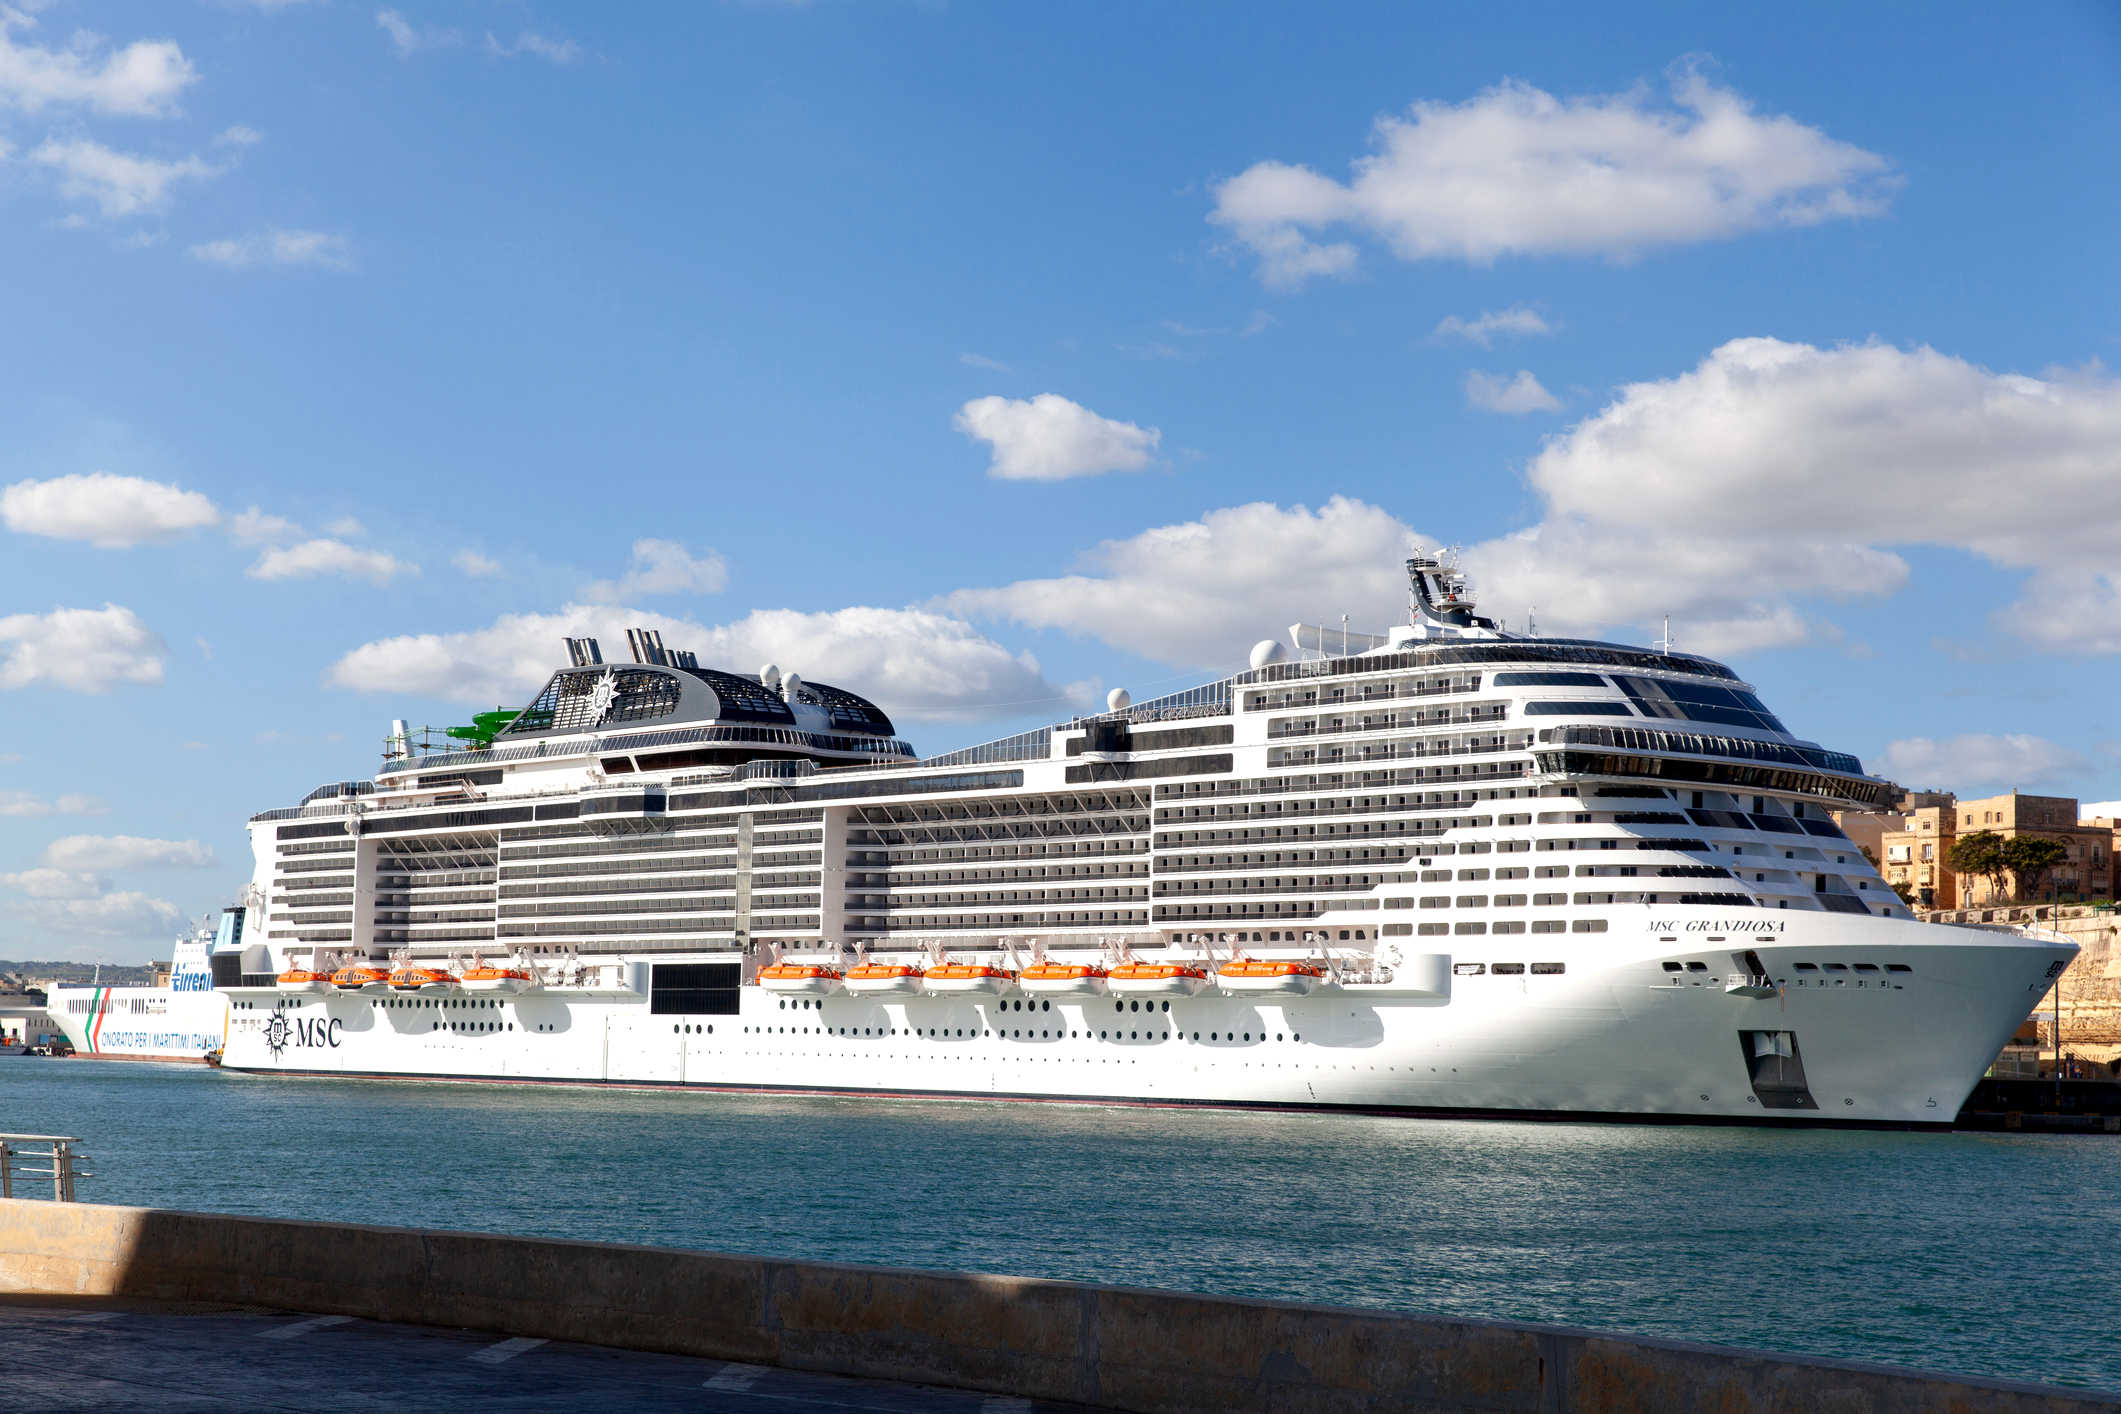 MSC Completing 5th Cruise As Company Sets Standard For Industry - Travel Off Path